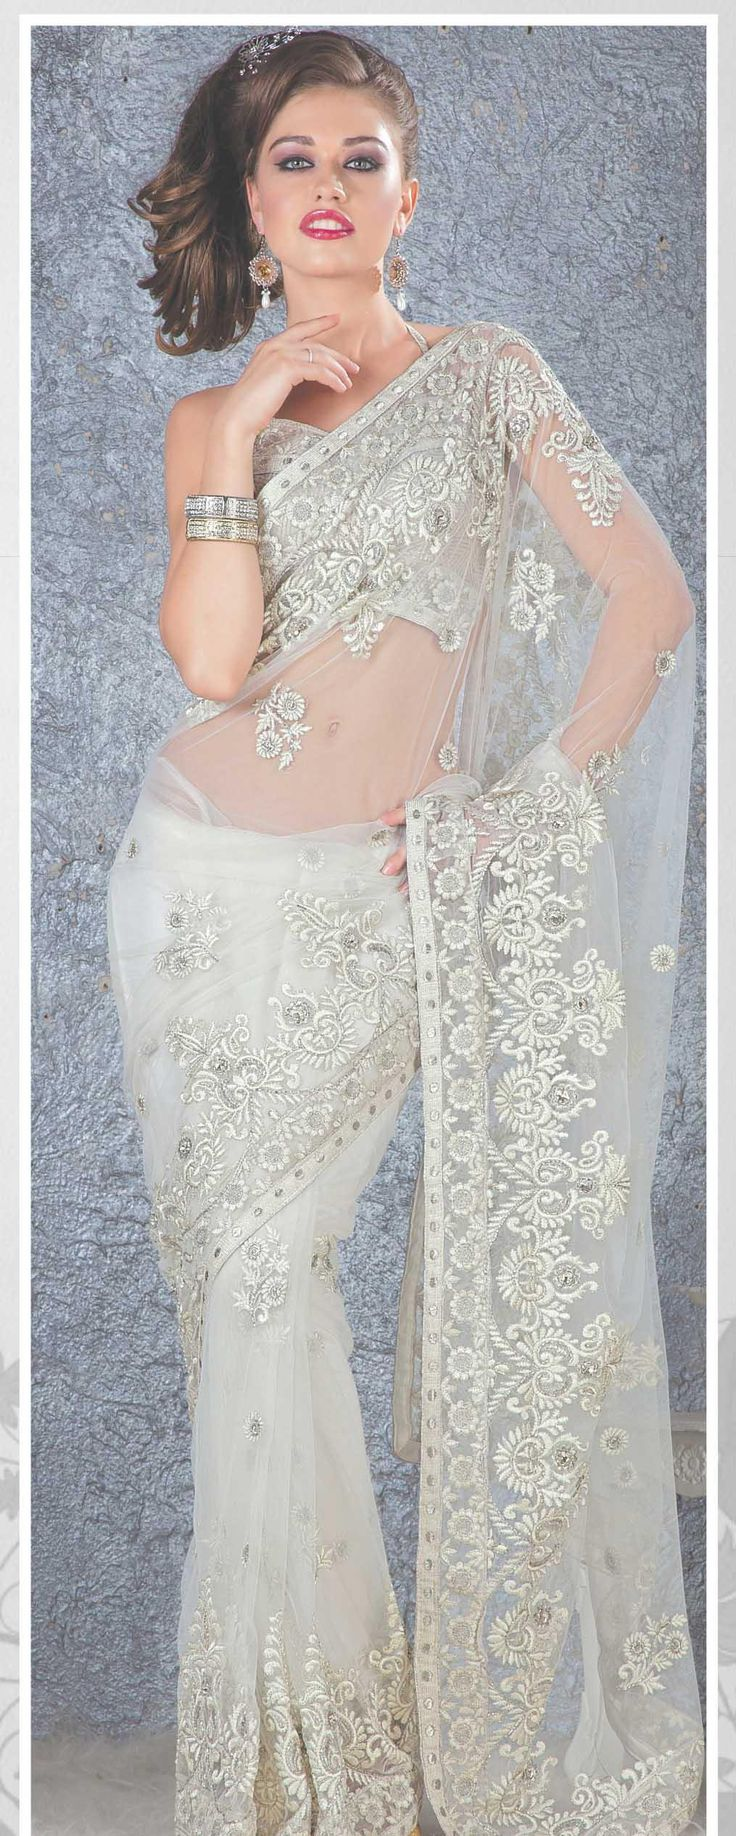 White Indian Wedding Sarees | white-saree-white-net-saree-15856.jpg